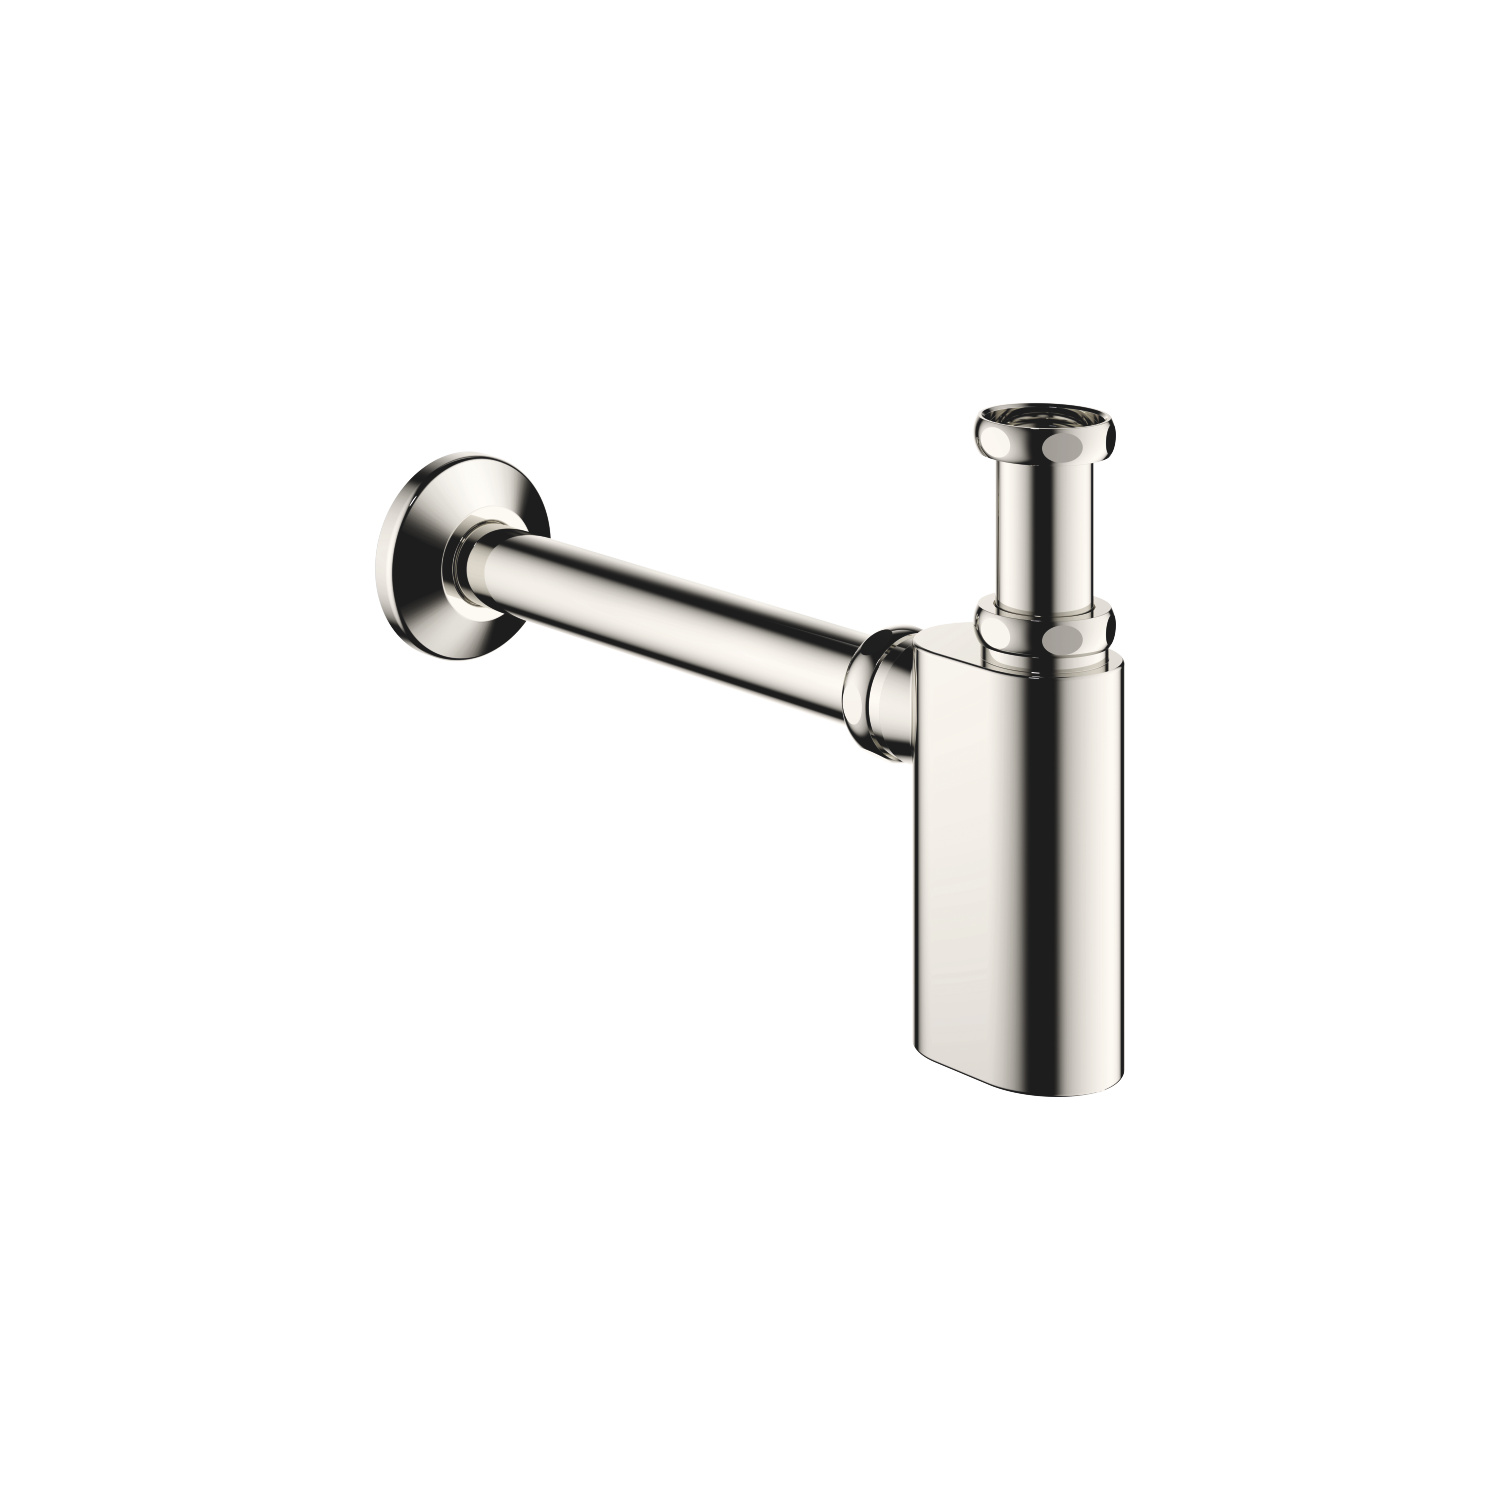 "Siphon for basin 1 1/4"" - platinum - 10 040 970-08"